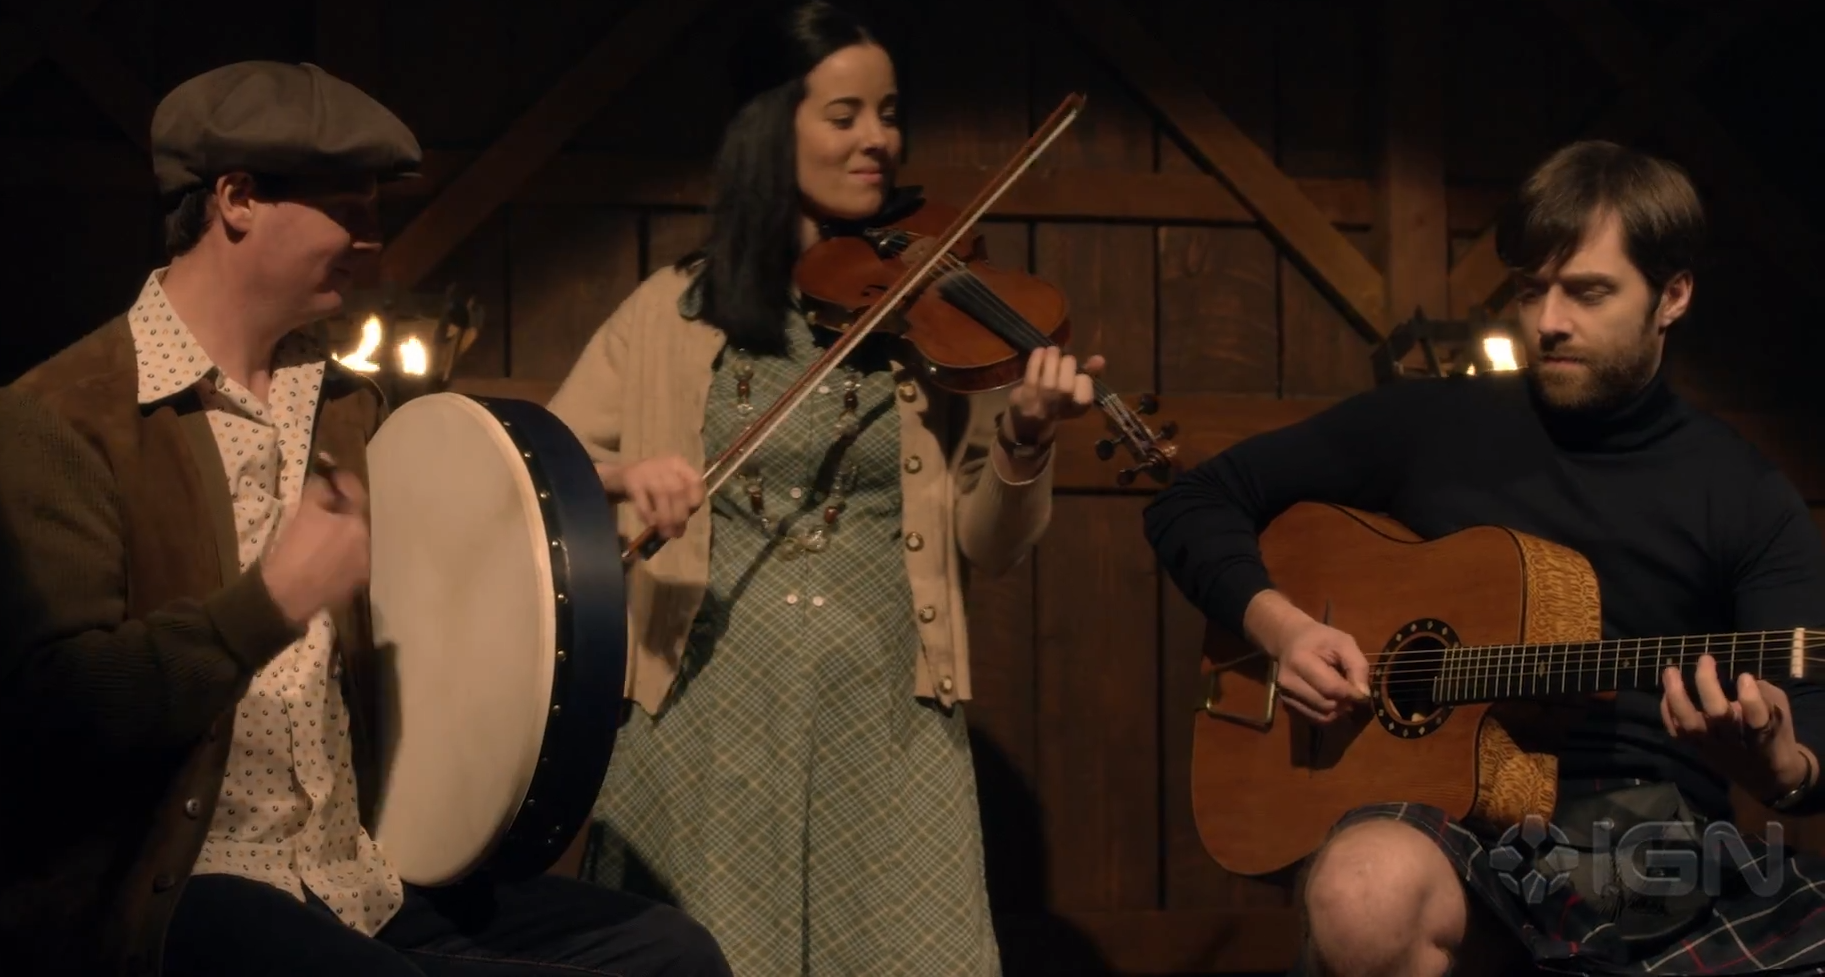 Roger on stage with a band at Scottish festival in season 4, episode 3 of Outlander.